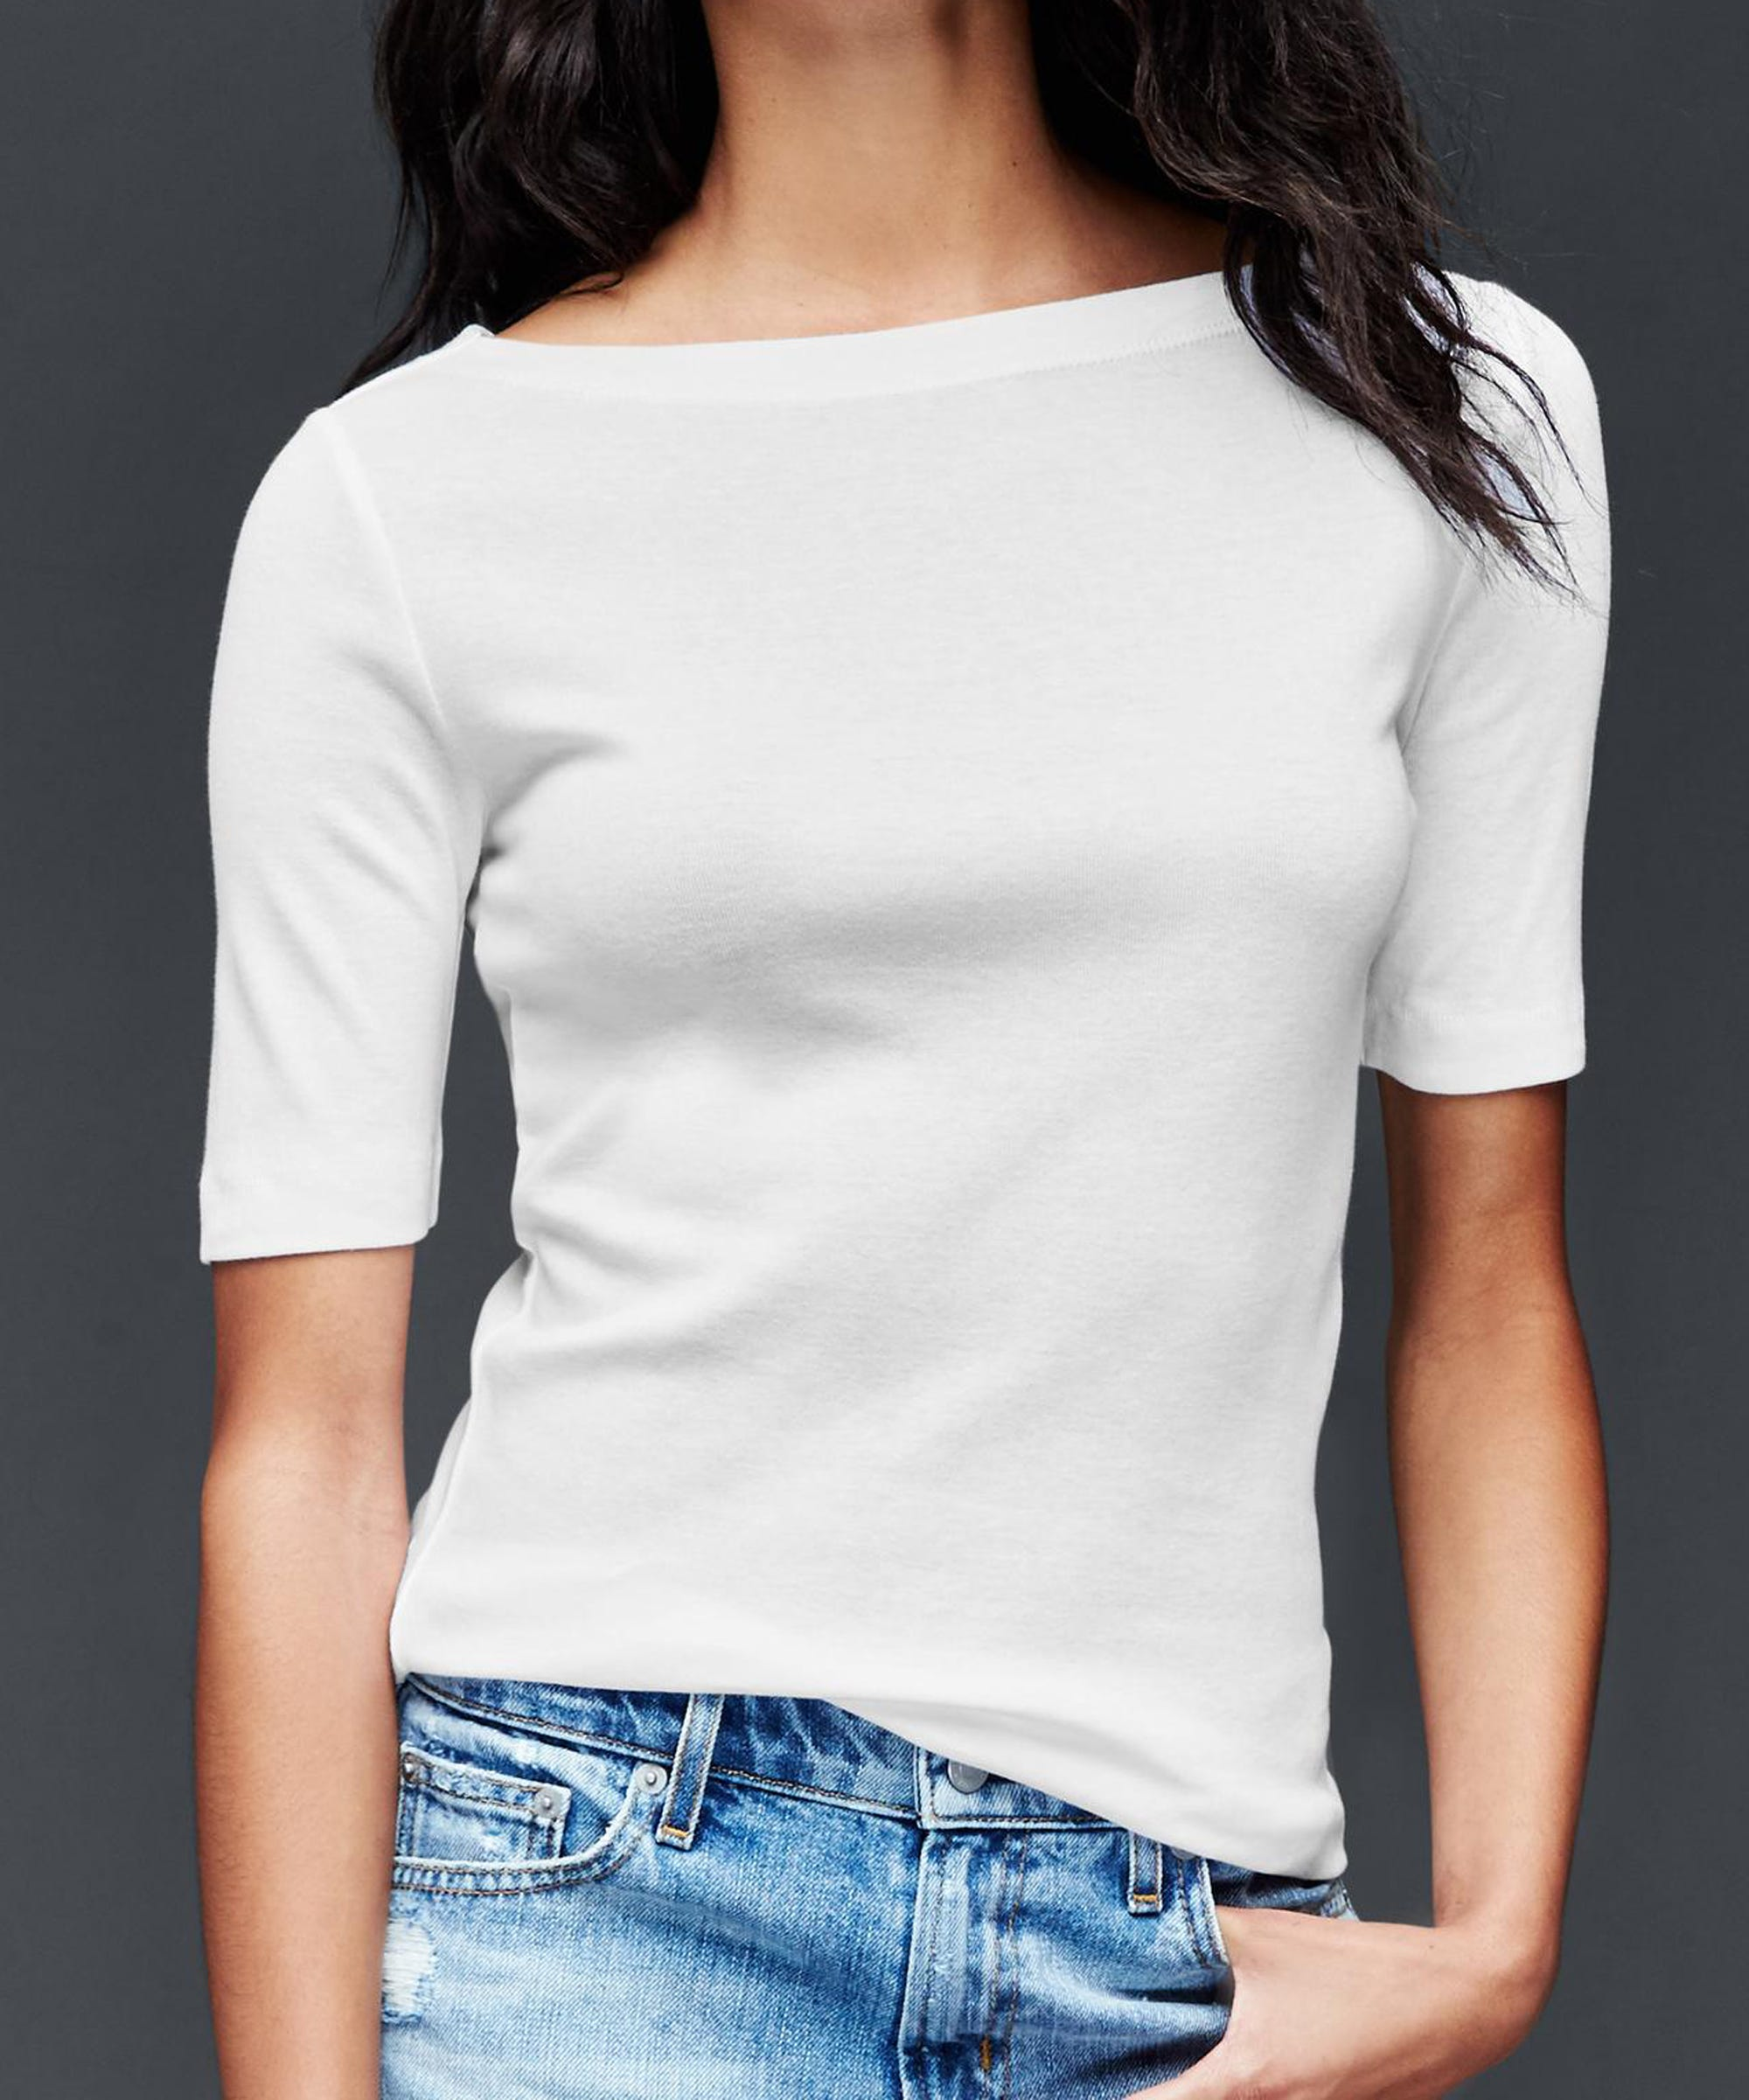 459d36bb458 Tested   Approved  The Best White Tees That Aren t See-Through At All